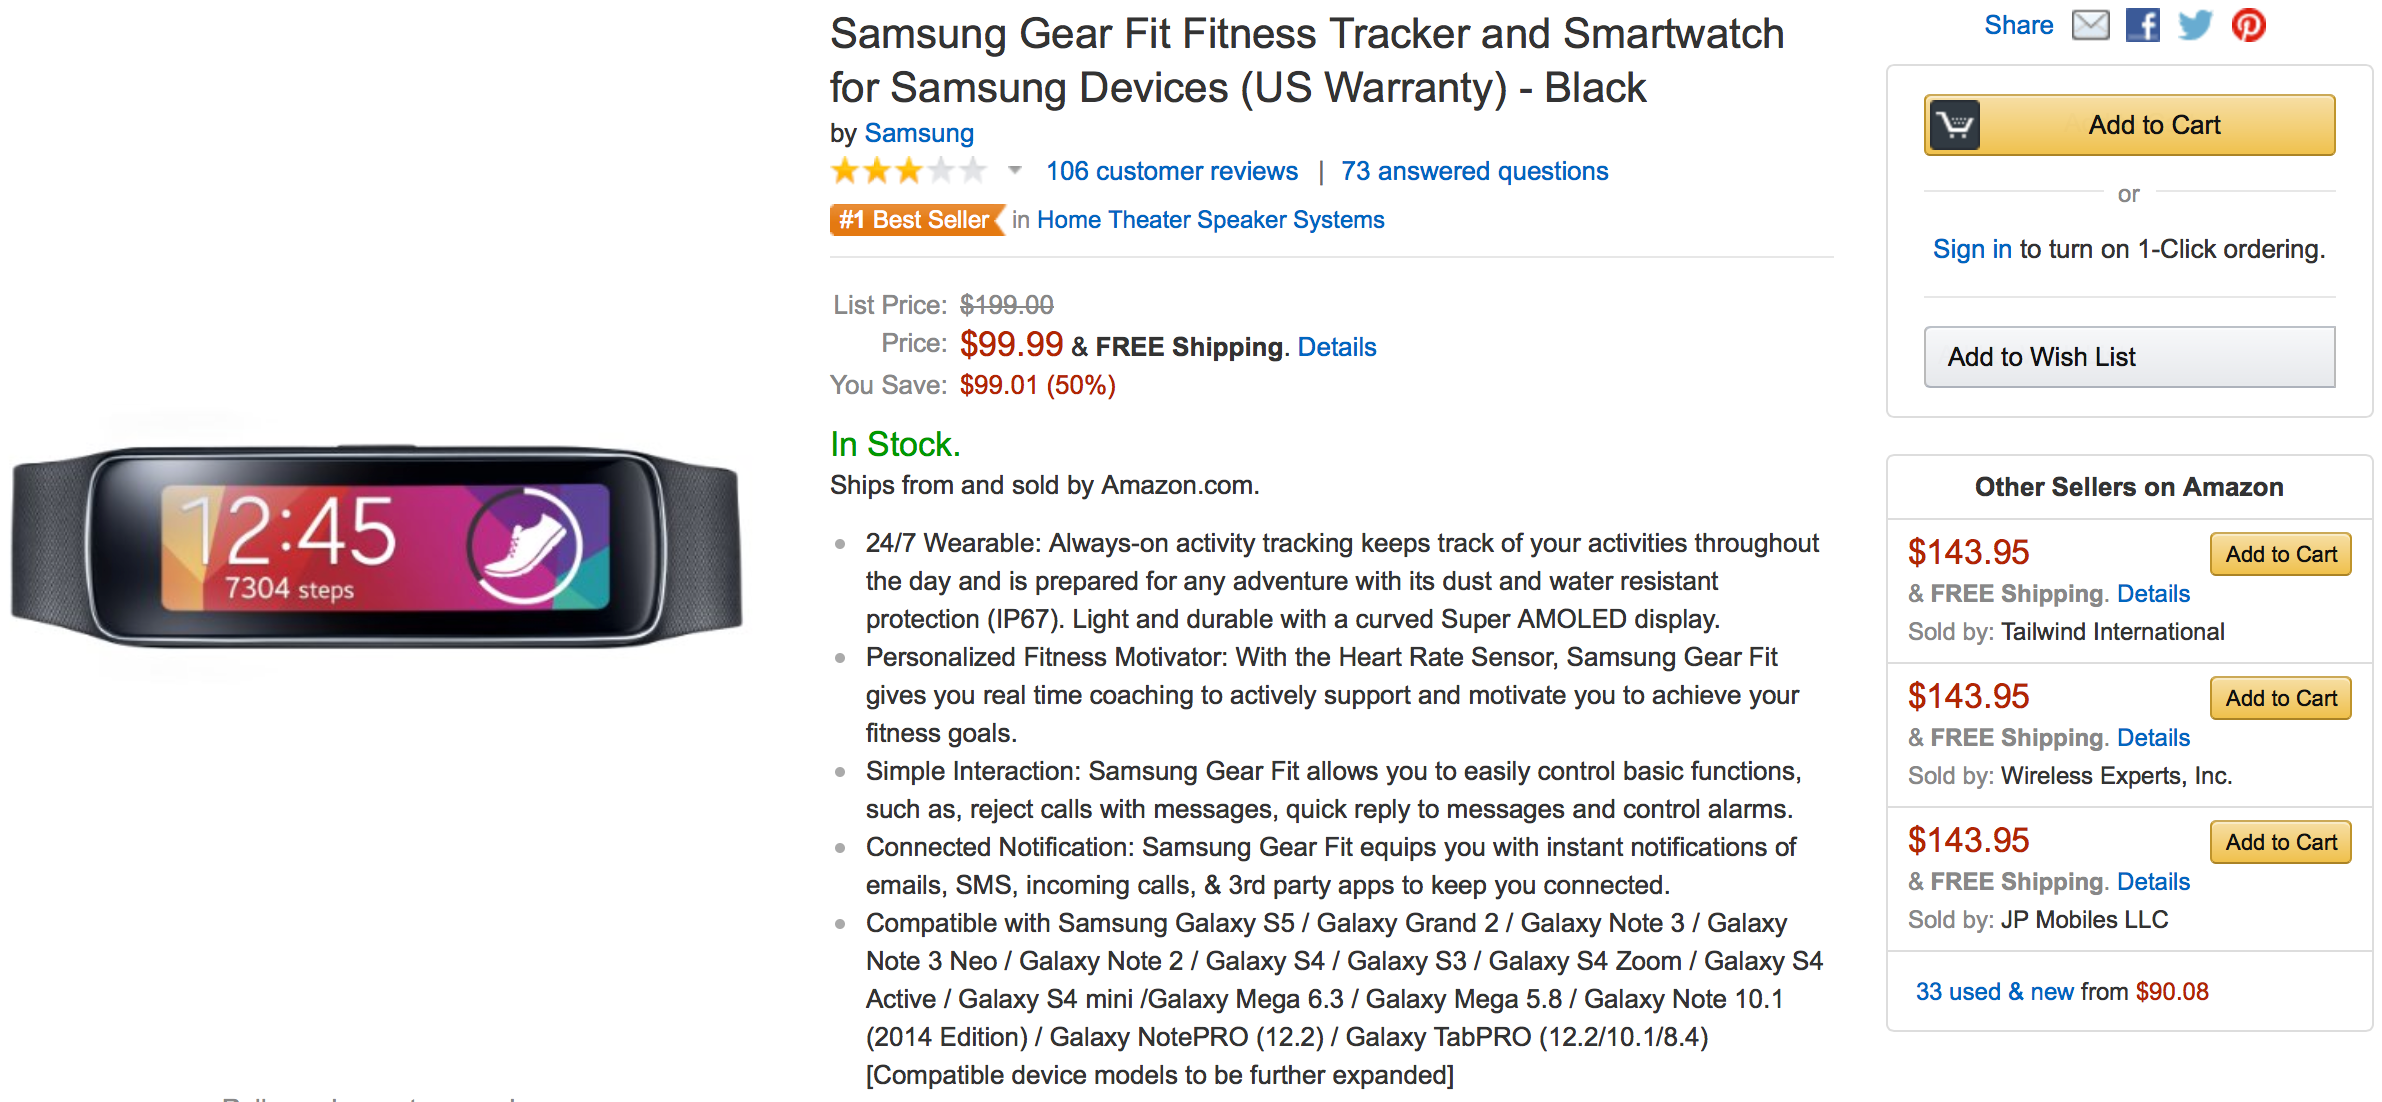 Samsung Gear Fit Offer Amazon